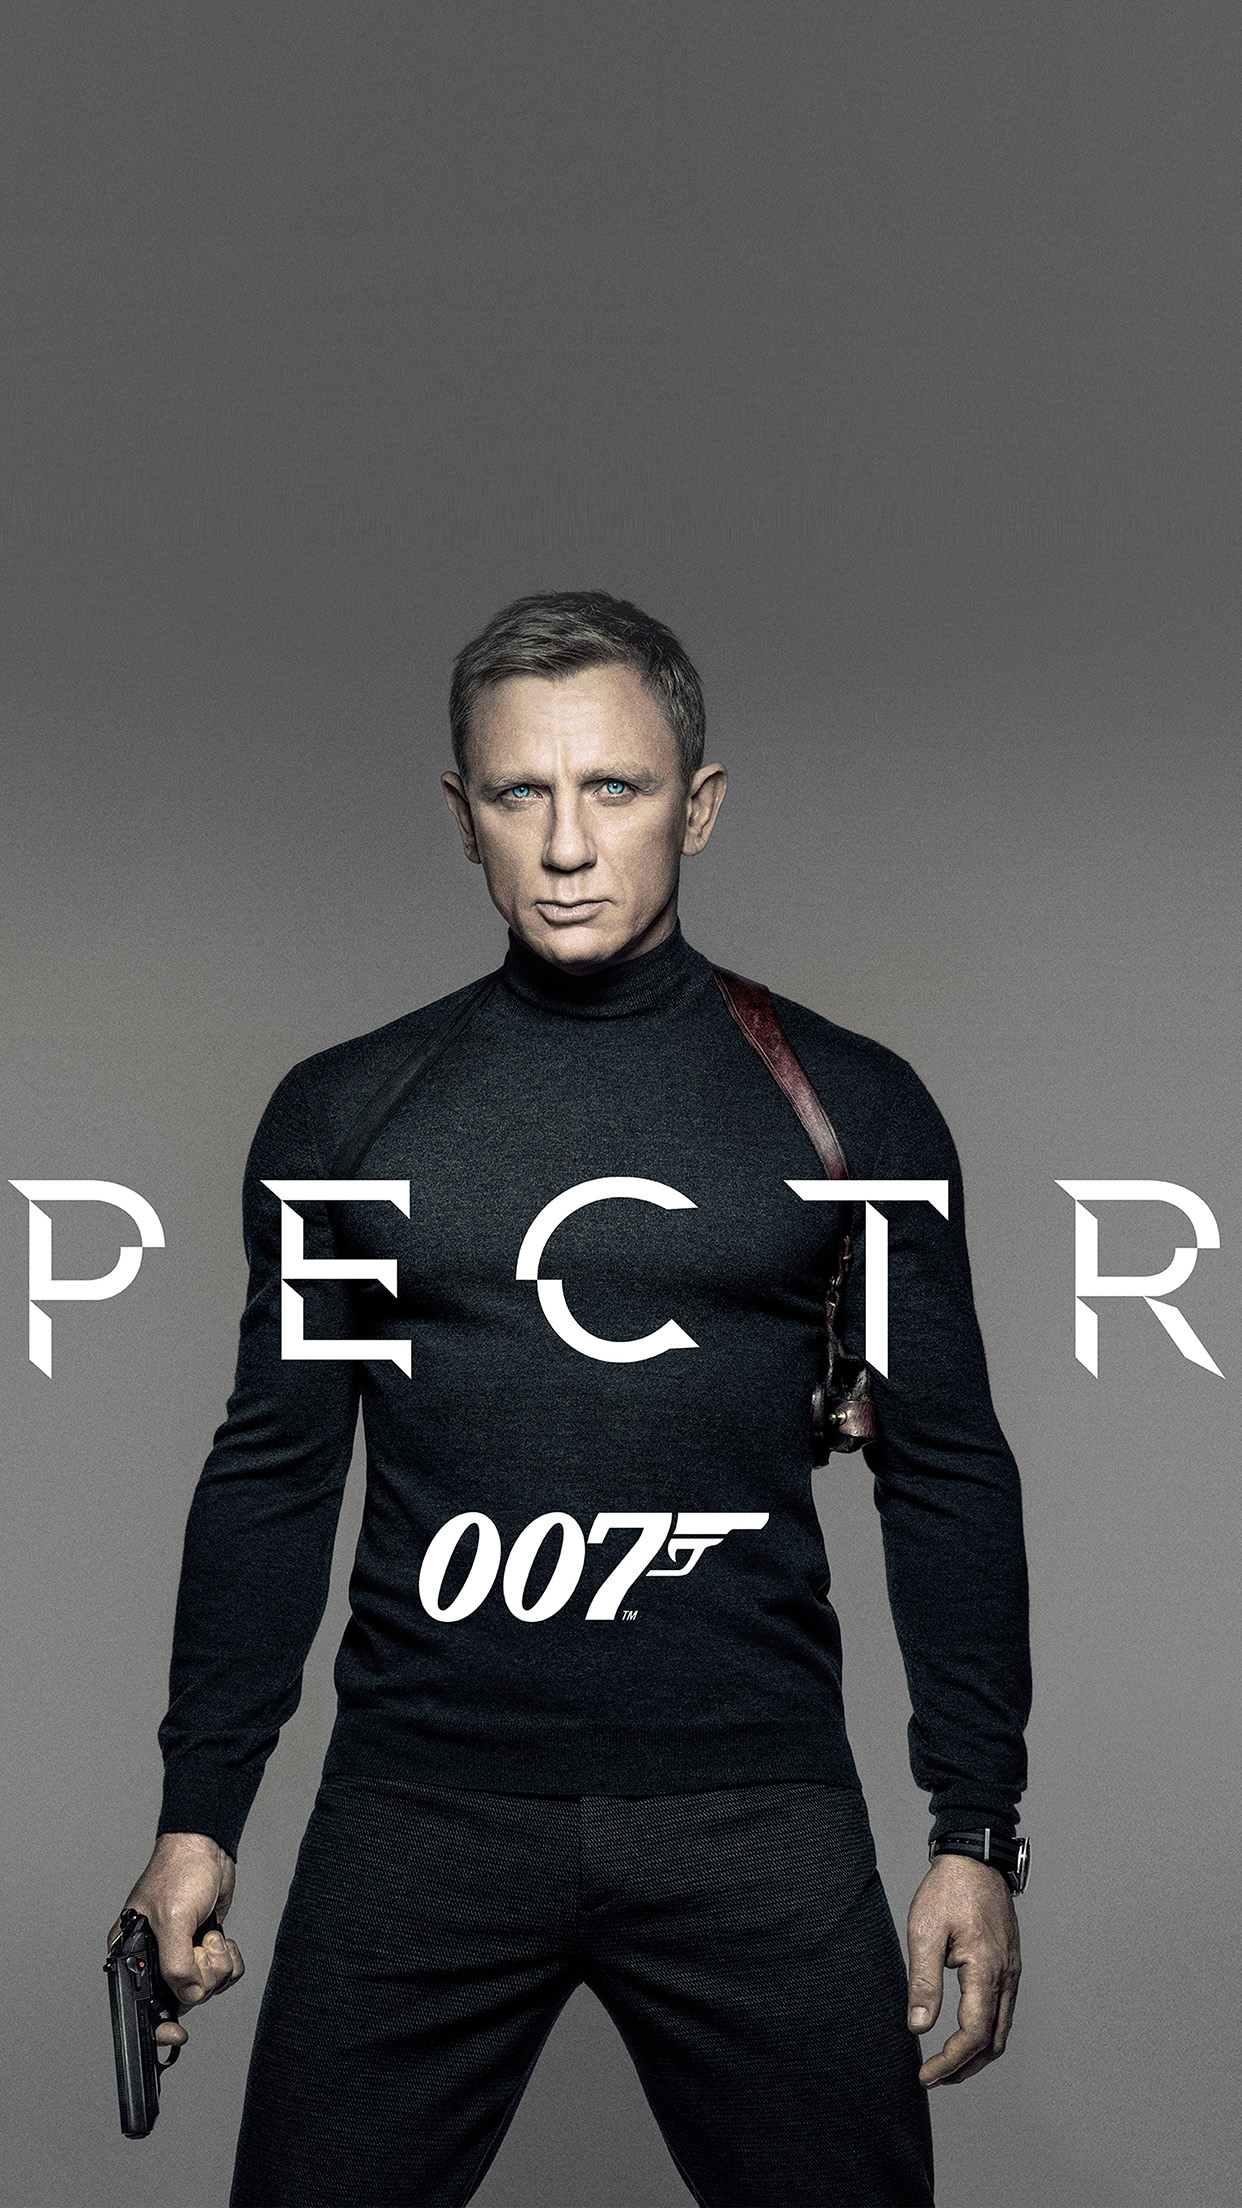 James Bond 007 Spectre Movie Film Poster Android wallpaper